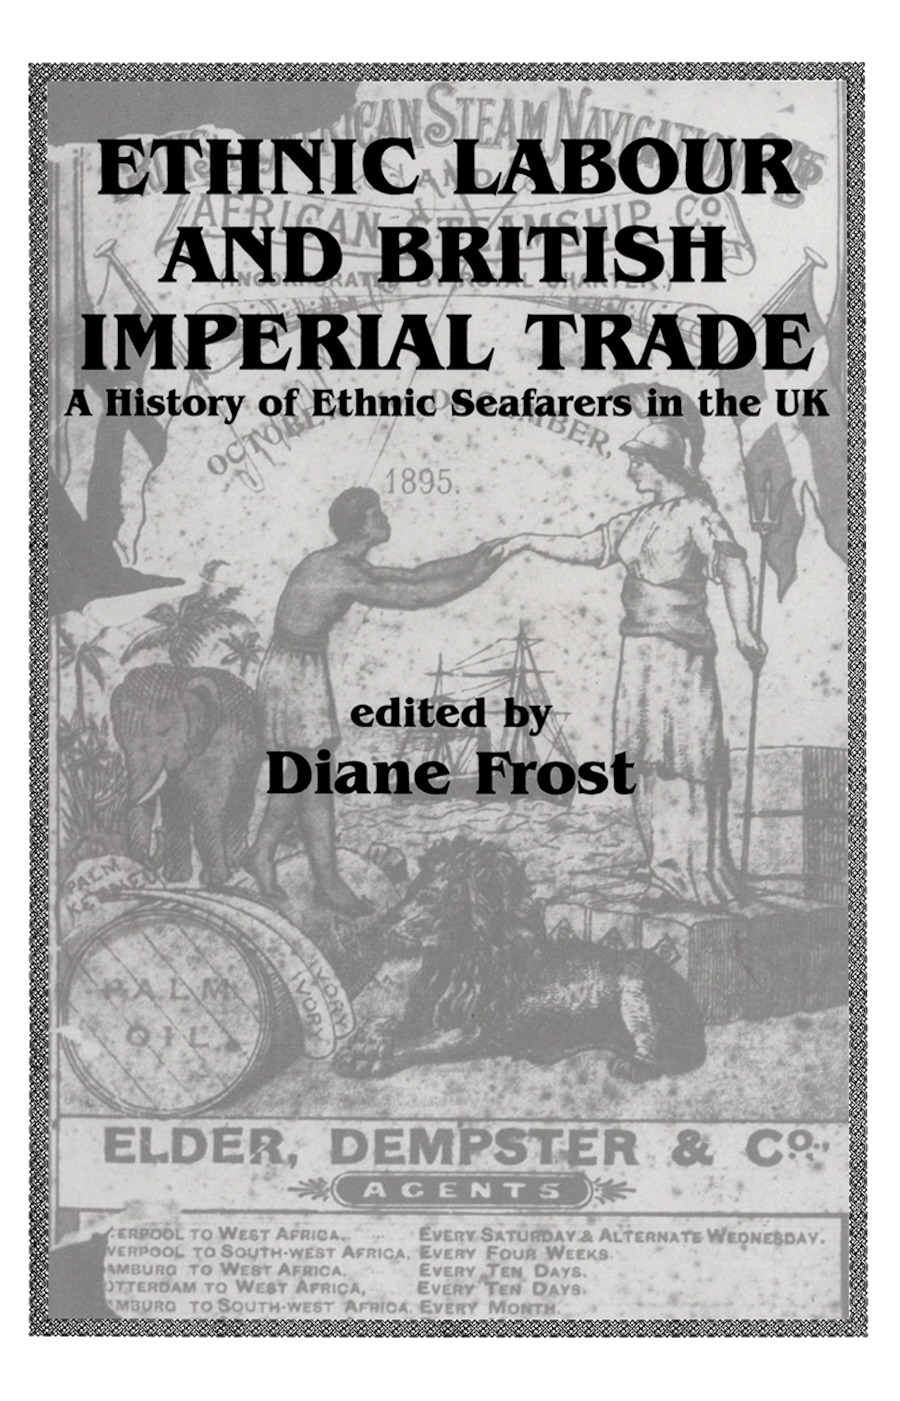 Ethnic Labour and British Imperial Trade: A History of Ethnic Seafarers in the UK book cover